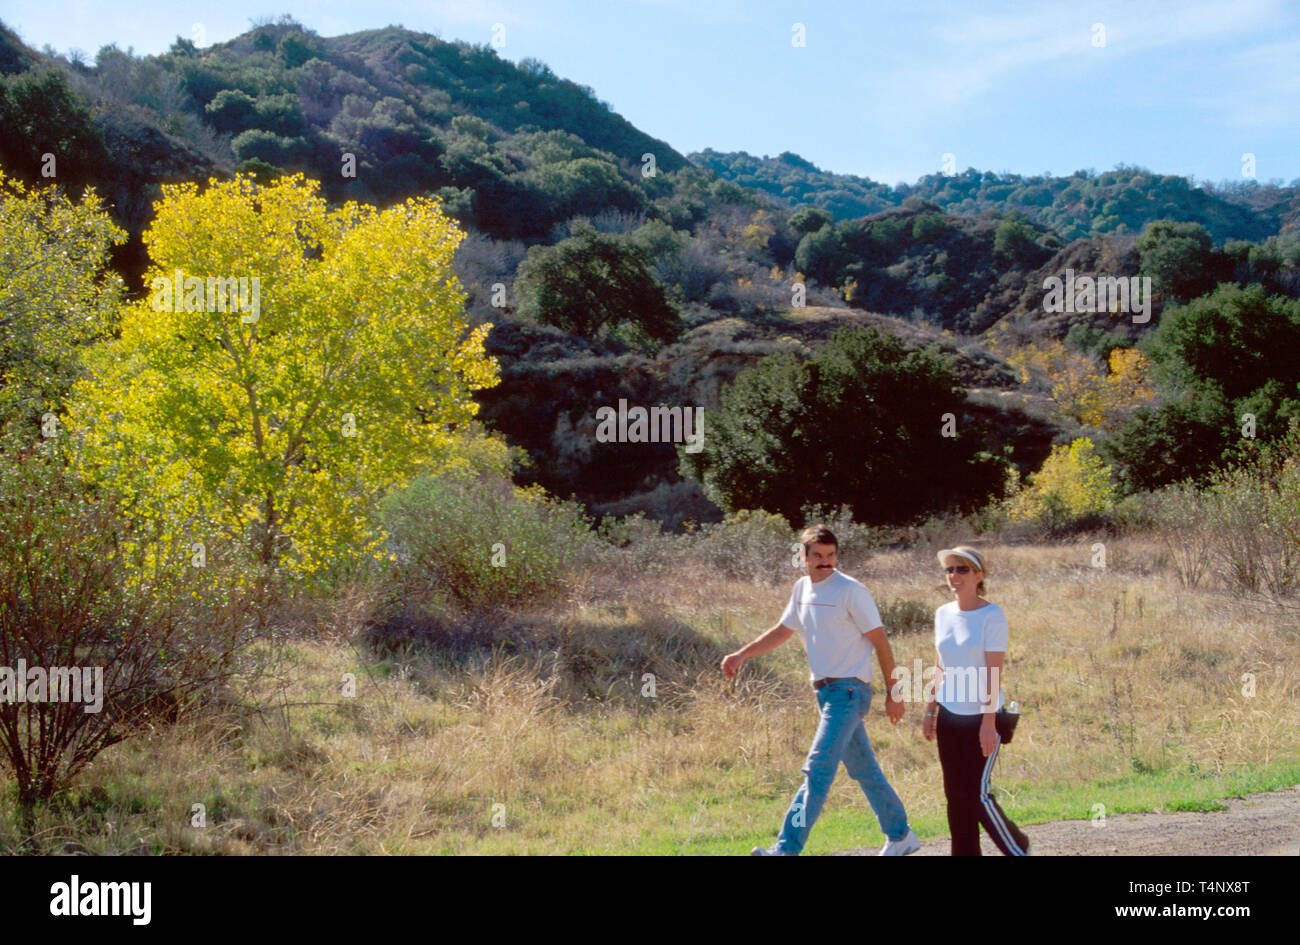 California Santa Clarita Stock Photo